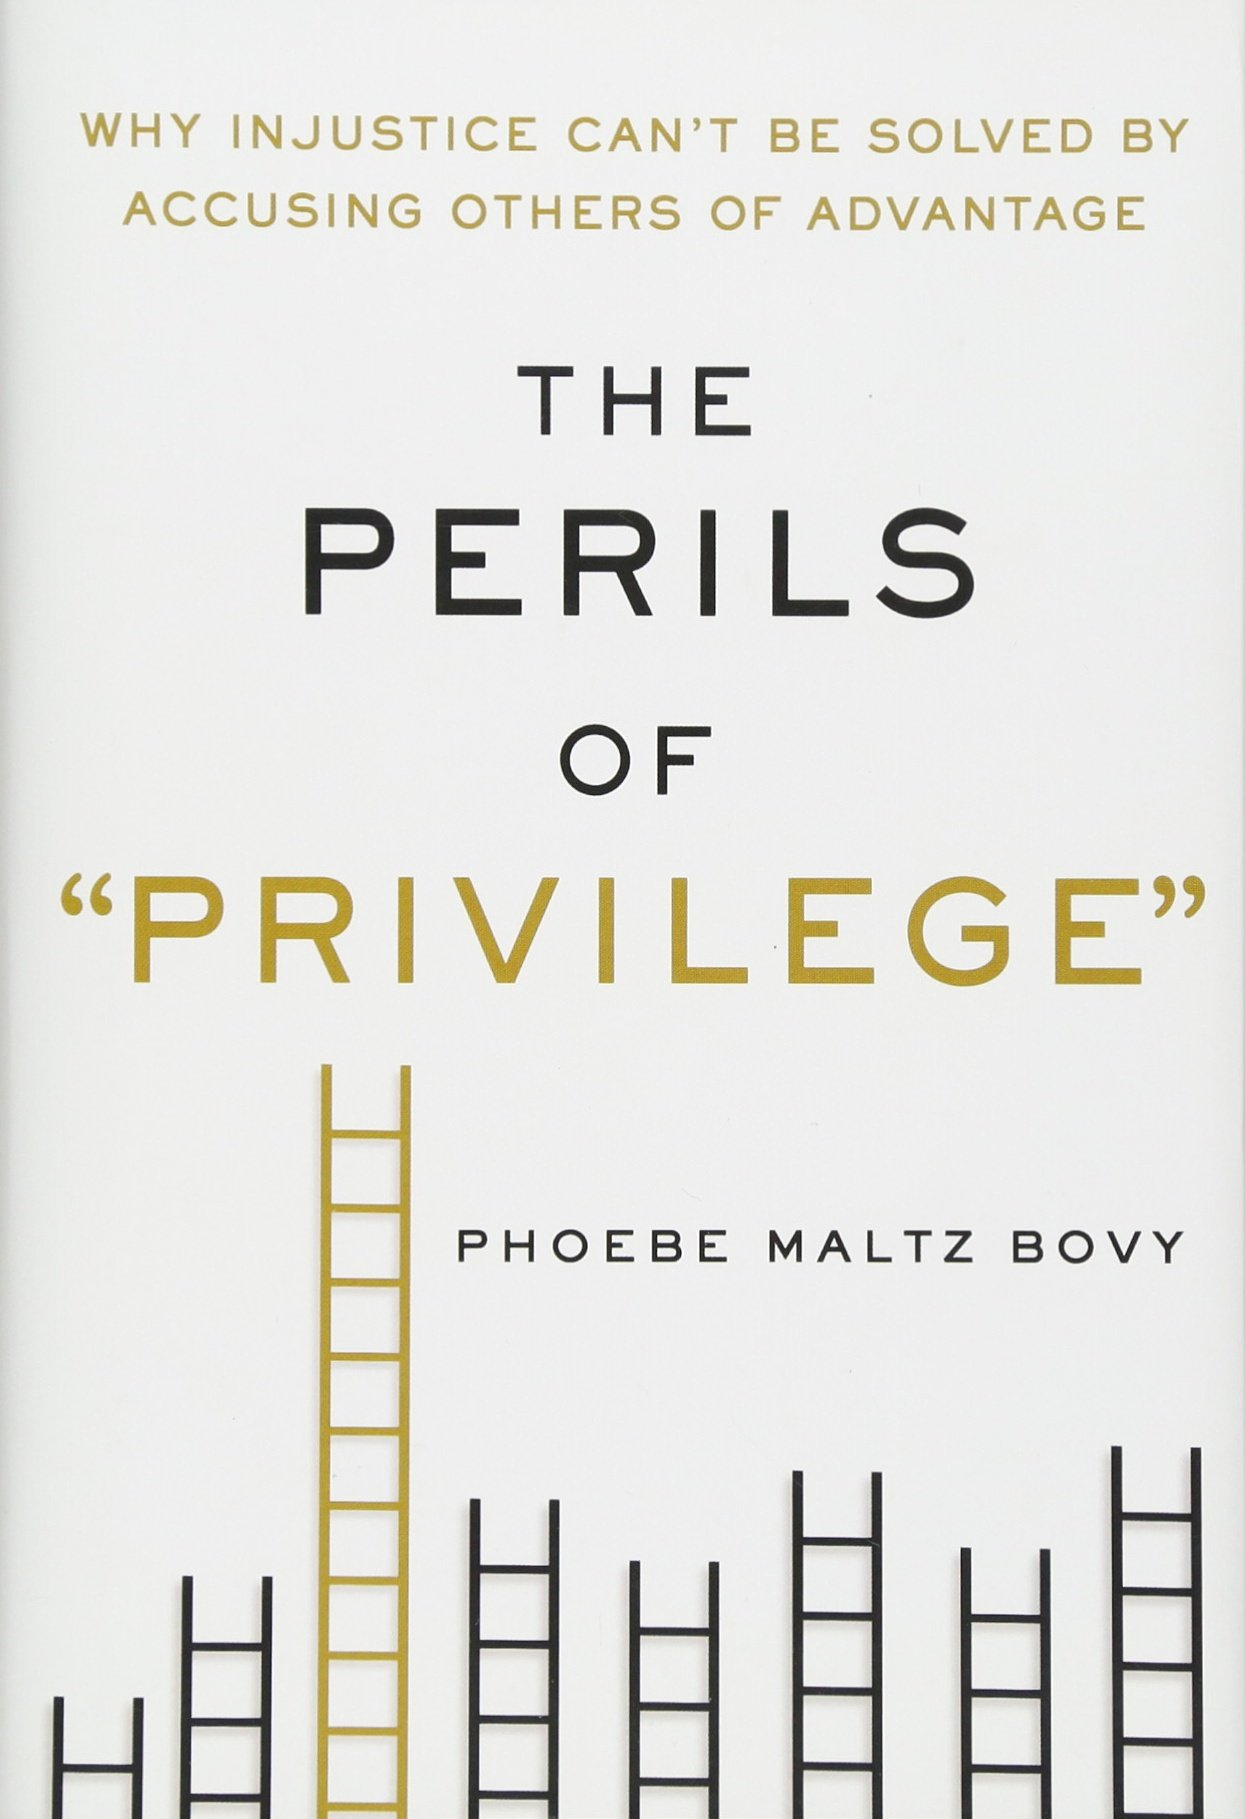 The Benefits of Privilege: Being Rich and White Is Proof You Must Be Good images